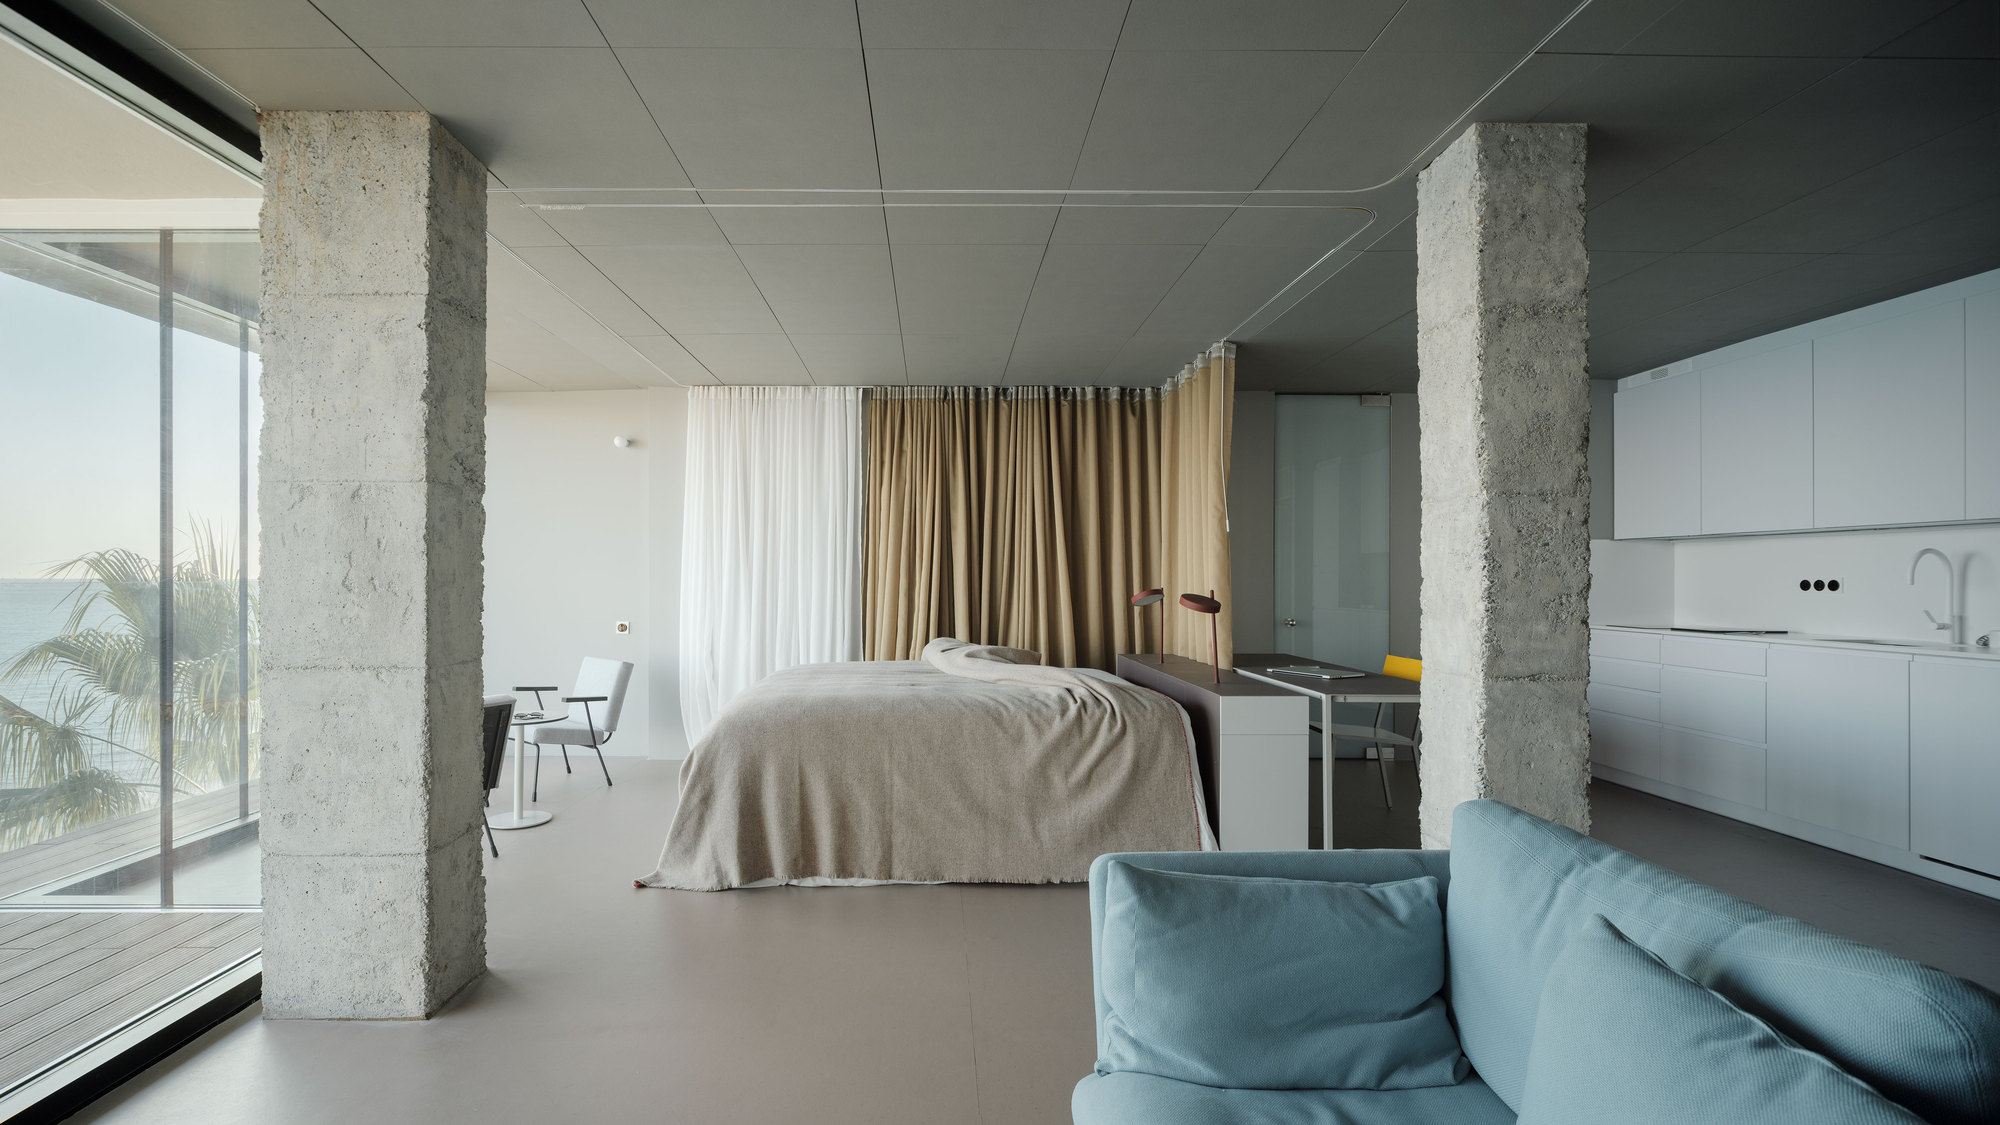 Torremuelle, a Room With a Sea View / Estudio Primitivo González